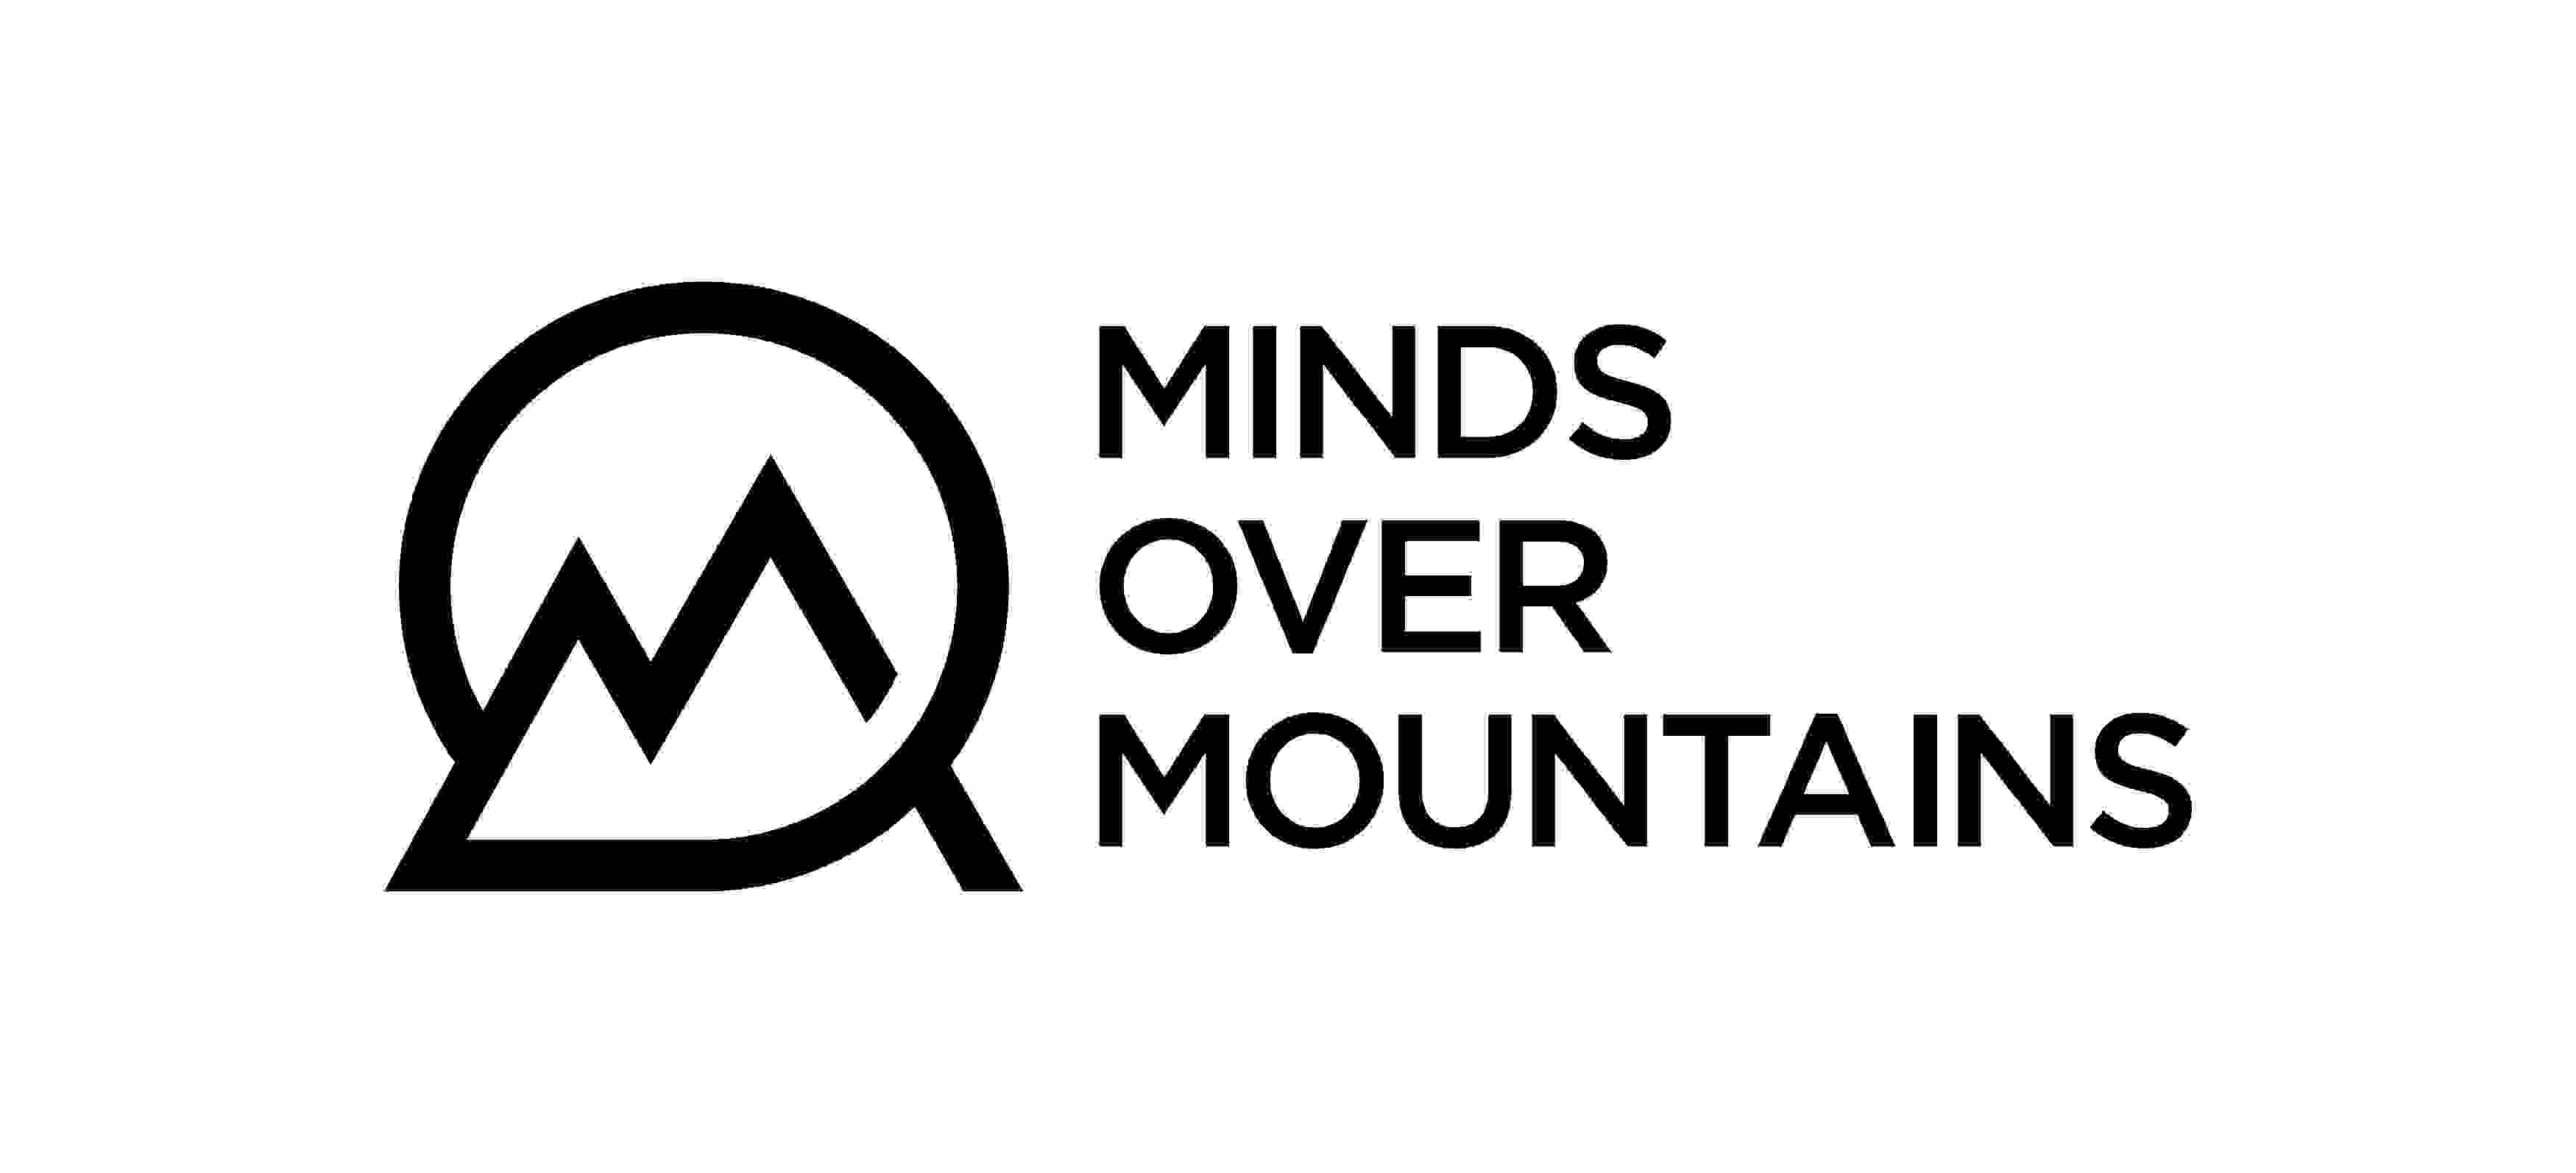 Outdoor mindset coaching logo to appeal to plus size adventurers